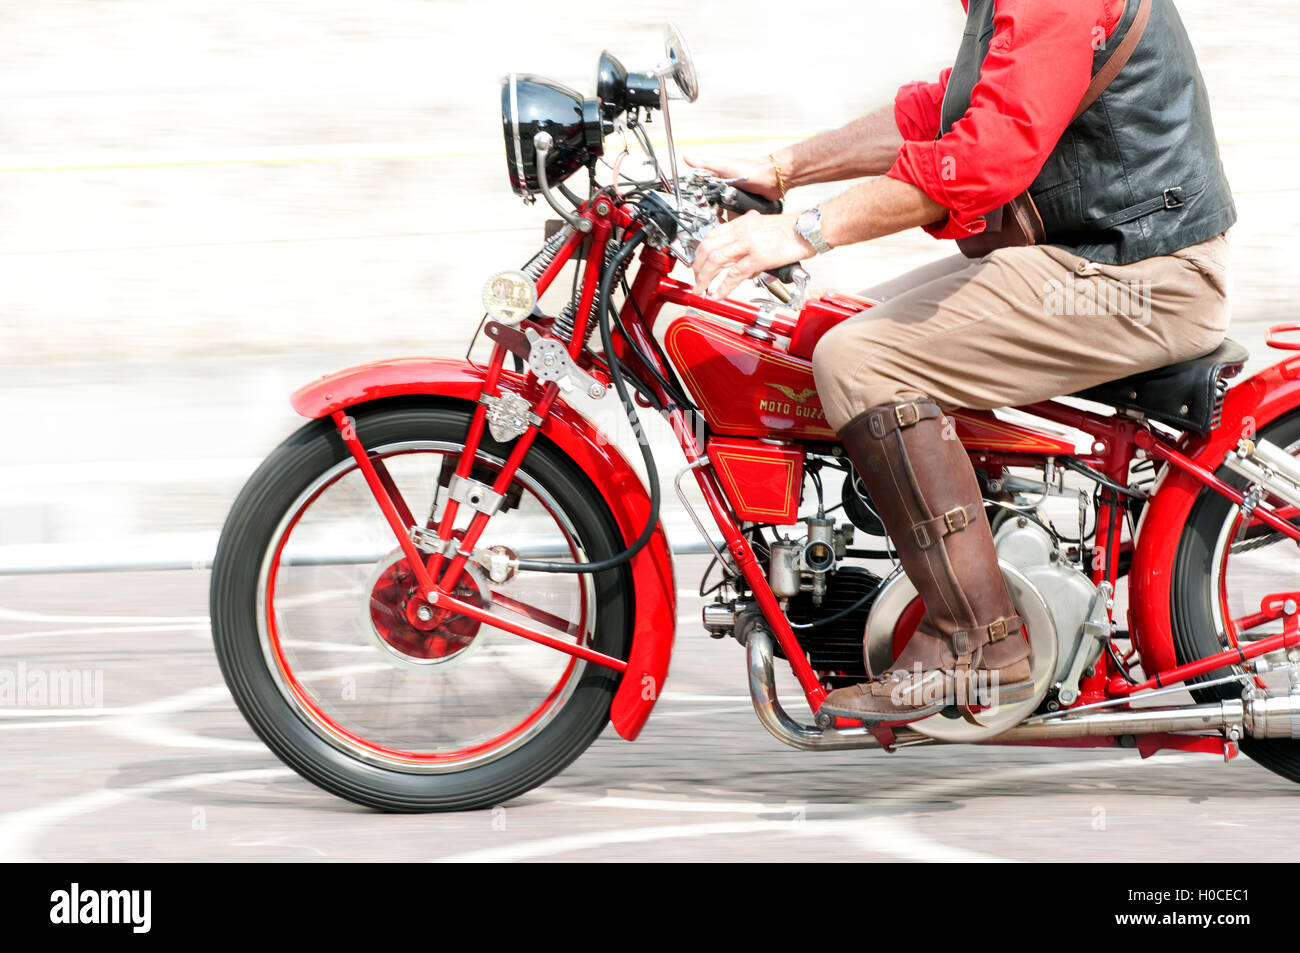 Italy, Lombardy, Meeting of Vintage Motorcycle, Vintage  Moto Guzzi Motorcycle - Stock Image